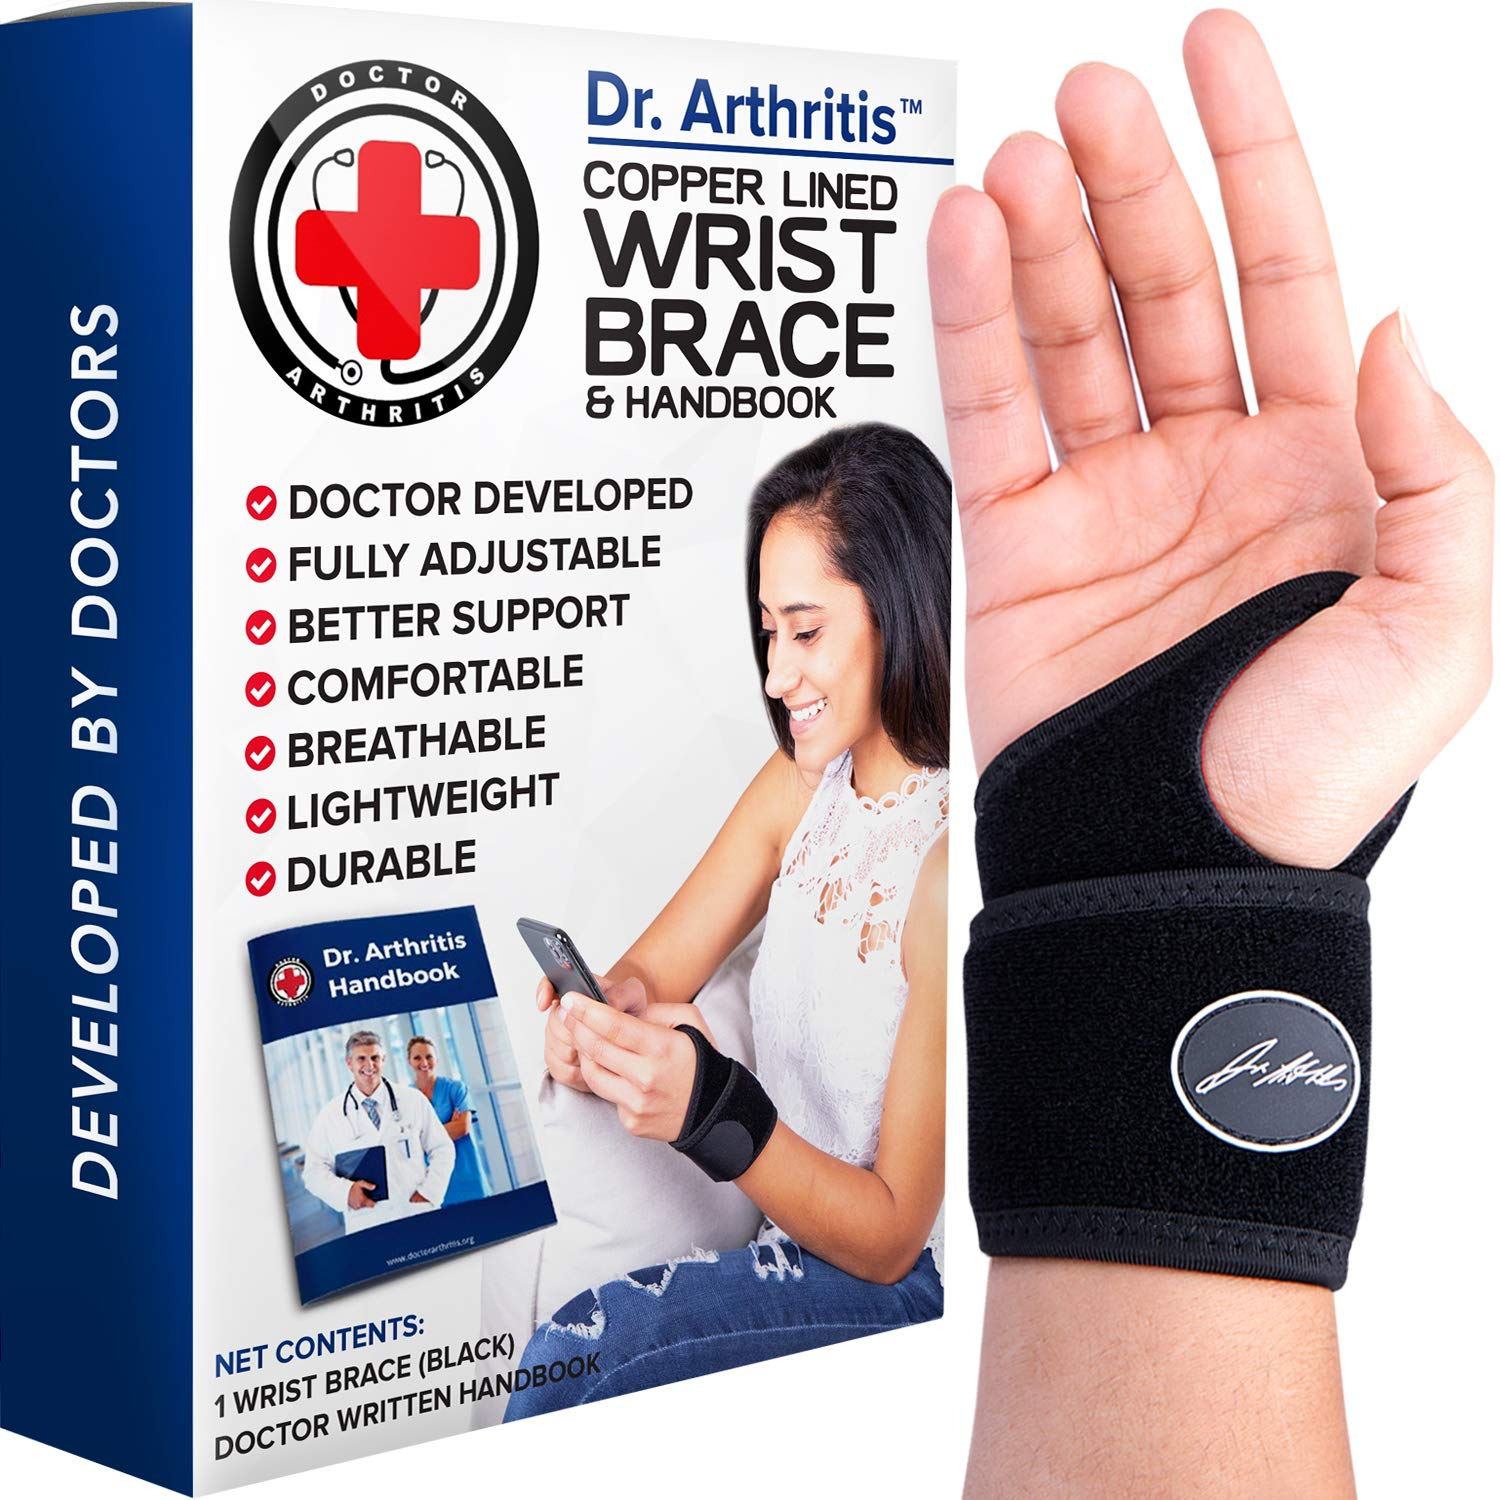 Doctor Developed Copper Wrist Brace / Carpal Tunnel Wrist Brace / Wrist Support / Wrist Splint / Hand Brace / Night Support for Women & Men - Registered Class I Medical Device - & Doctor Written Handbook - Right & Left hands (Single)